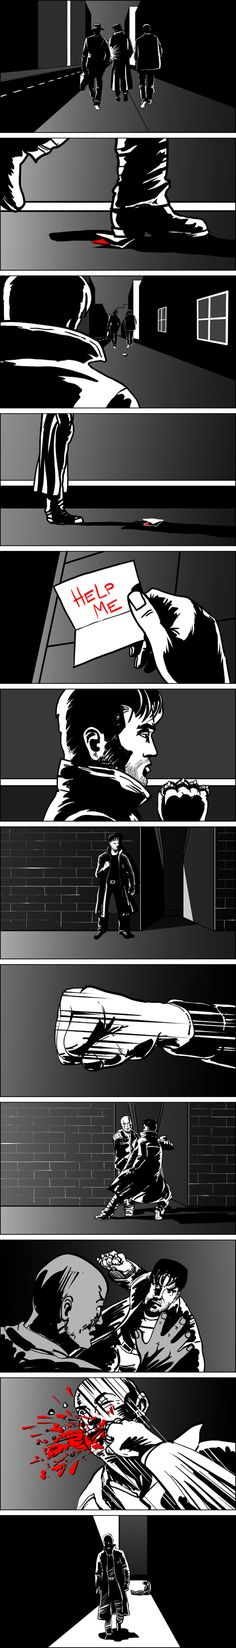 Storyboards For Horror Film. Storyboards For Films, Commercials